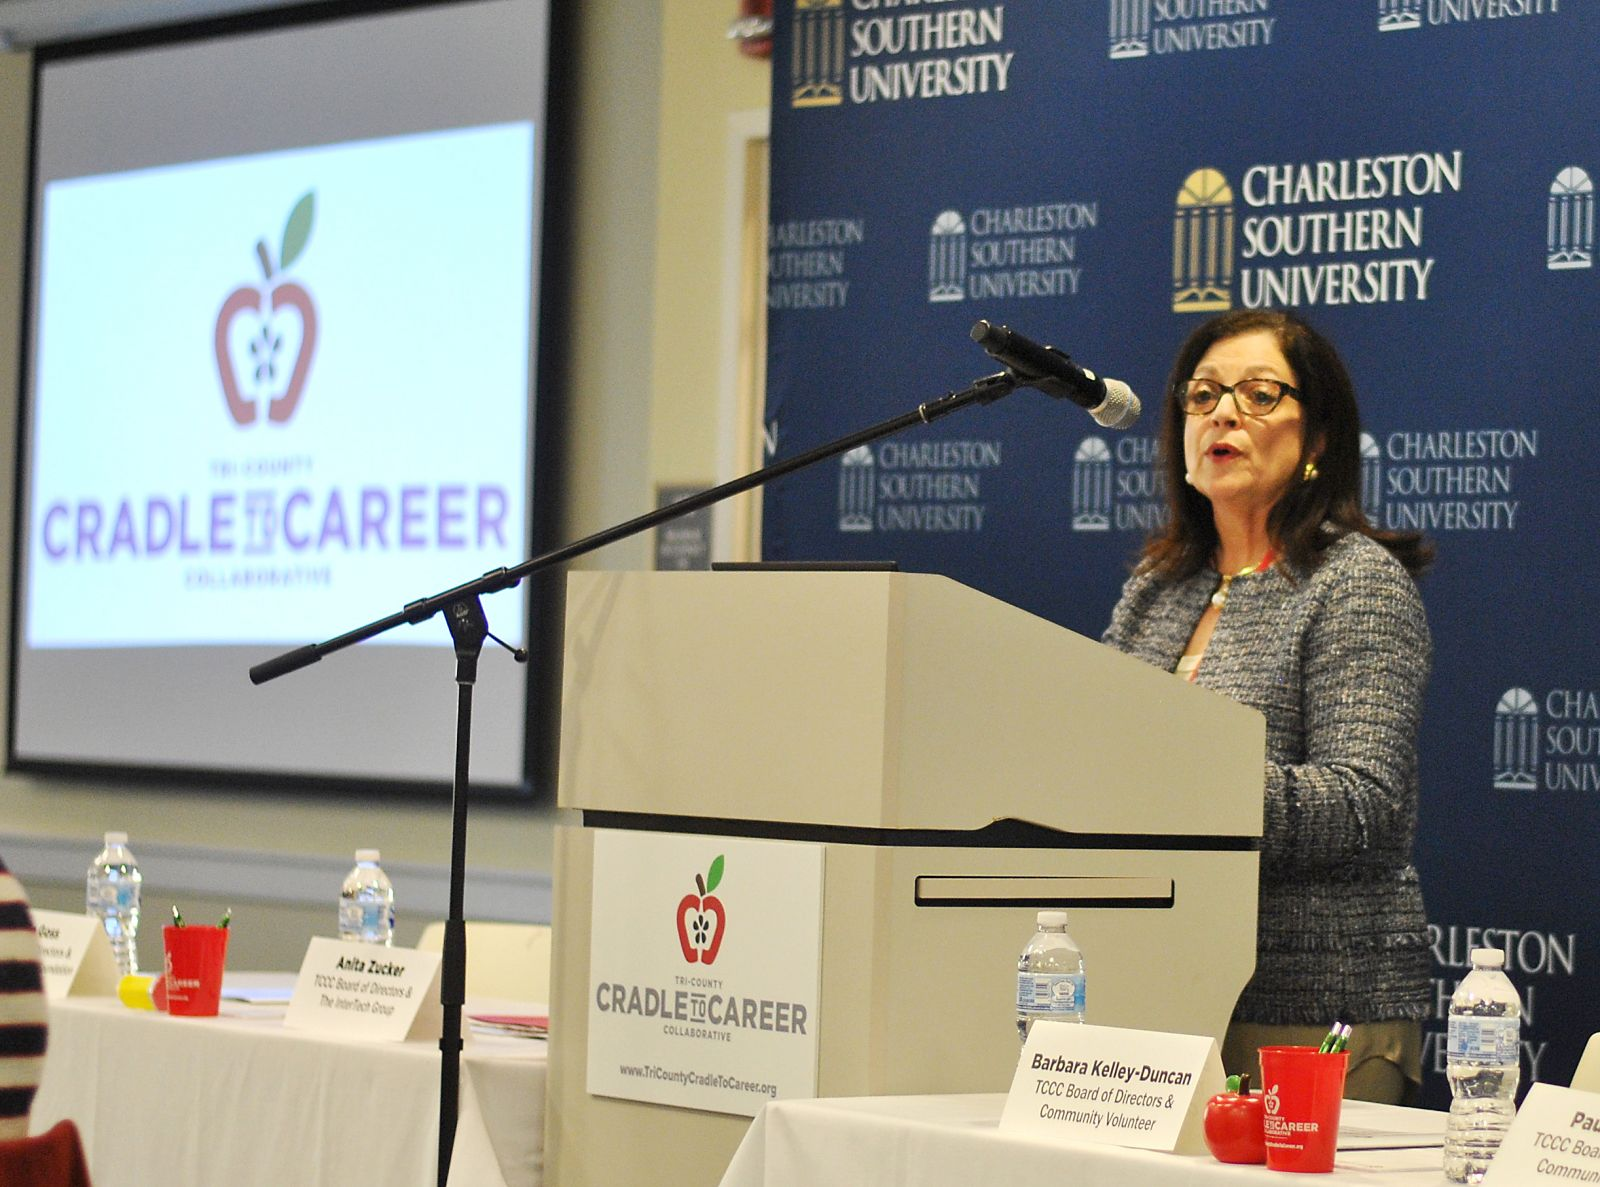 Tri-County Cradle to Career Collaborative board member Anita Zucker discusses how the education system in the Lowcountry could be changed to provide better outcomes for all students. (Photo/Ryan Wilcox)